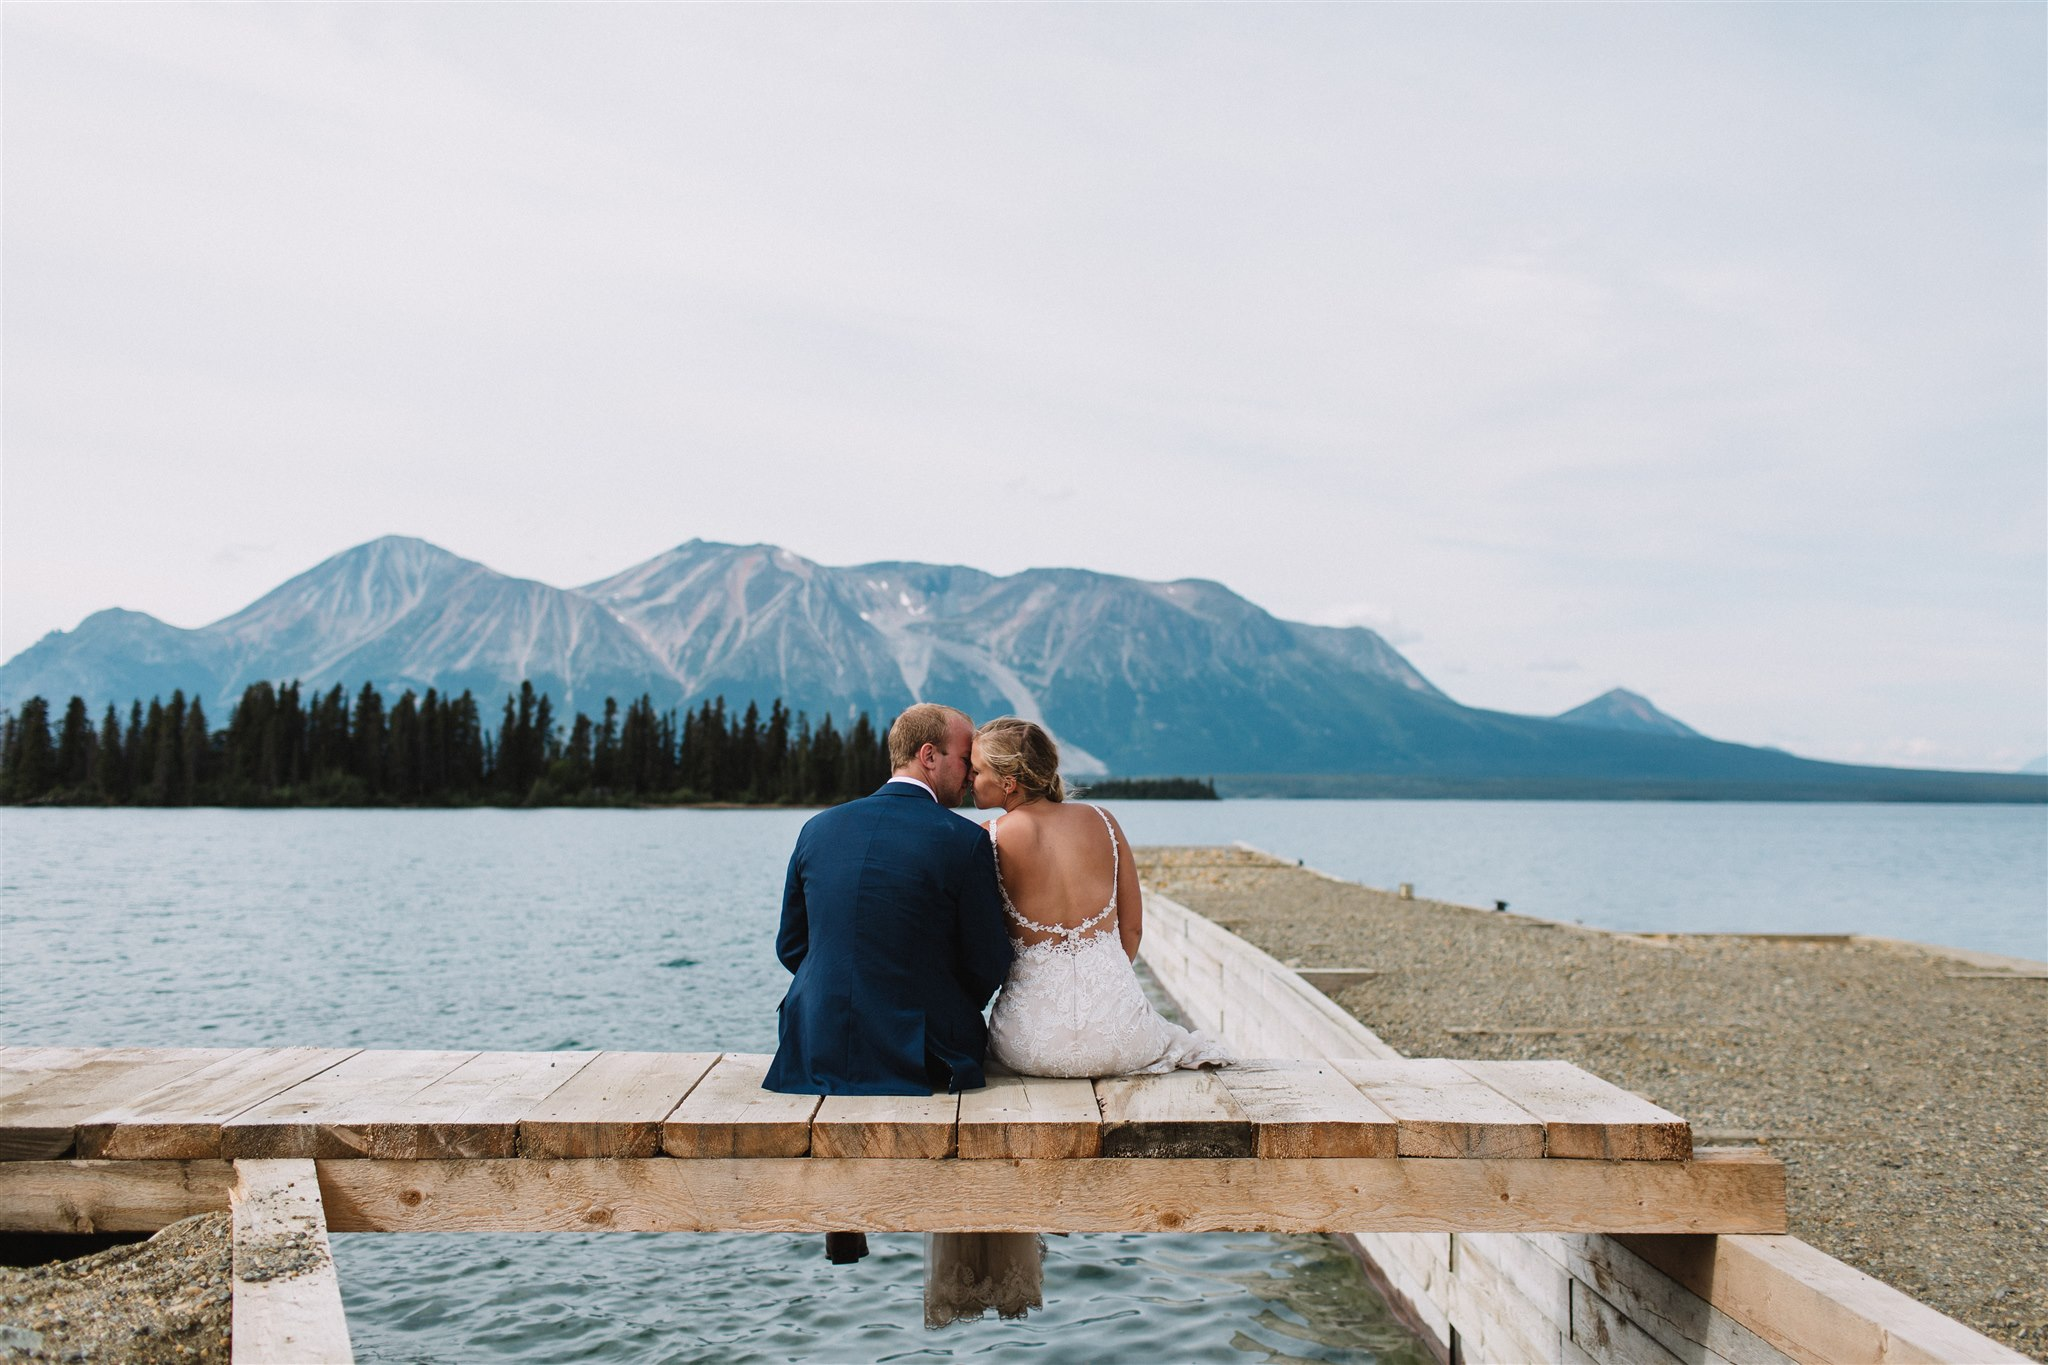 Wedding photography, Atlin, British Columbia